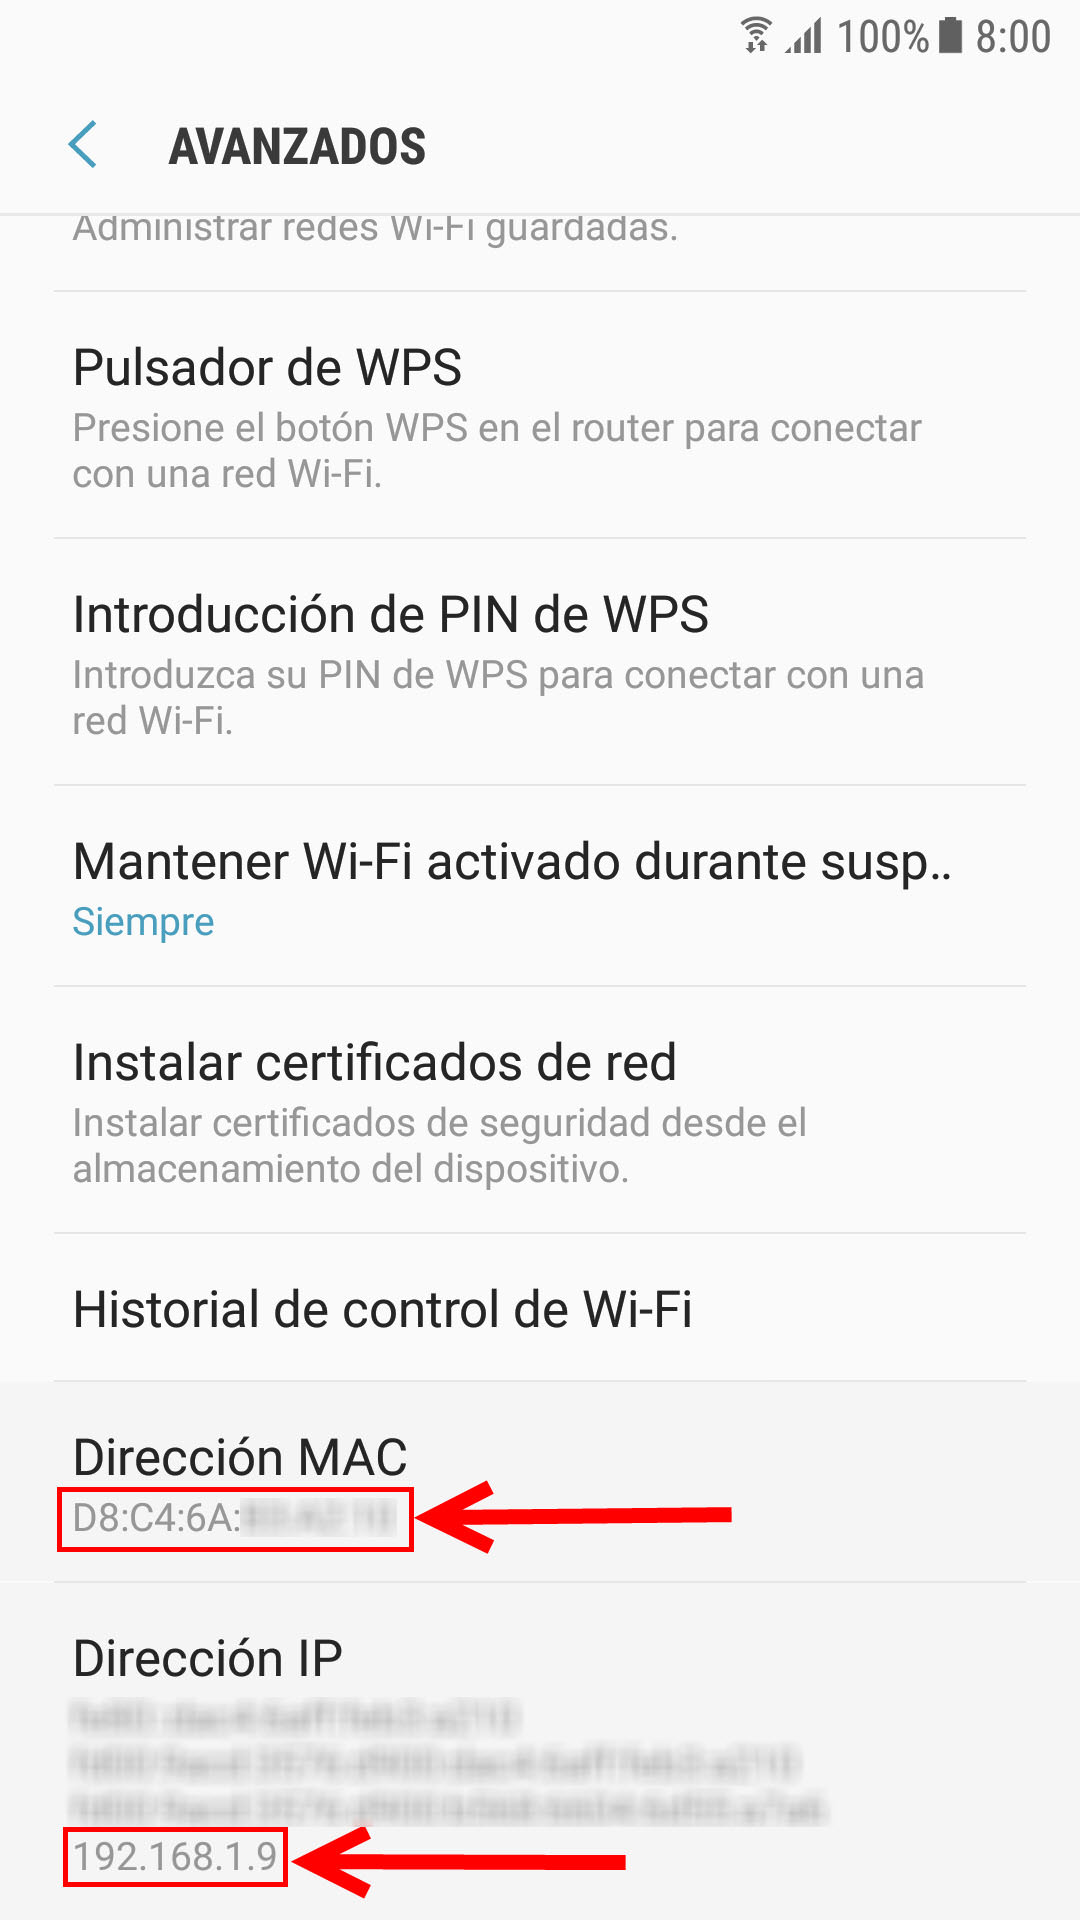 como descobrir o mac do celular android